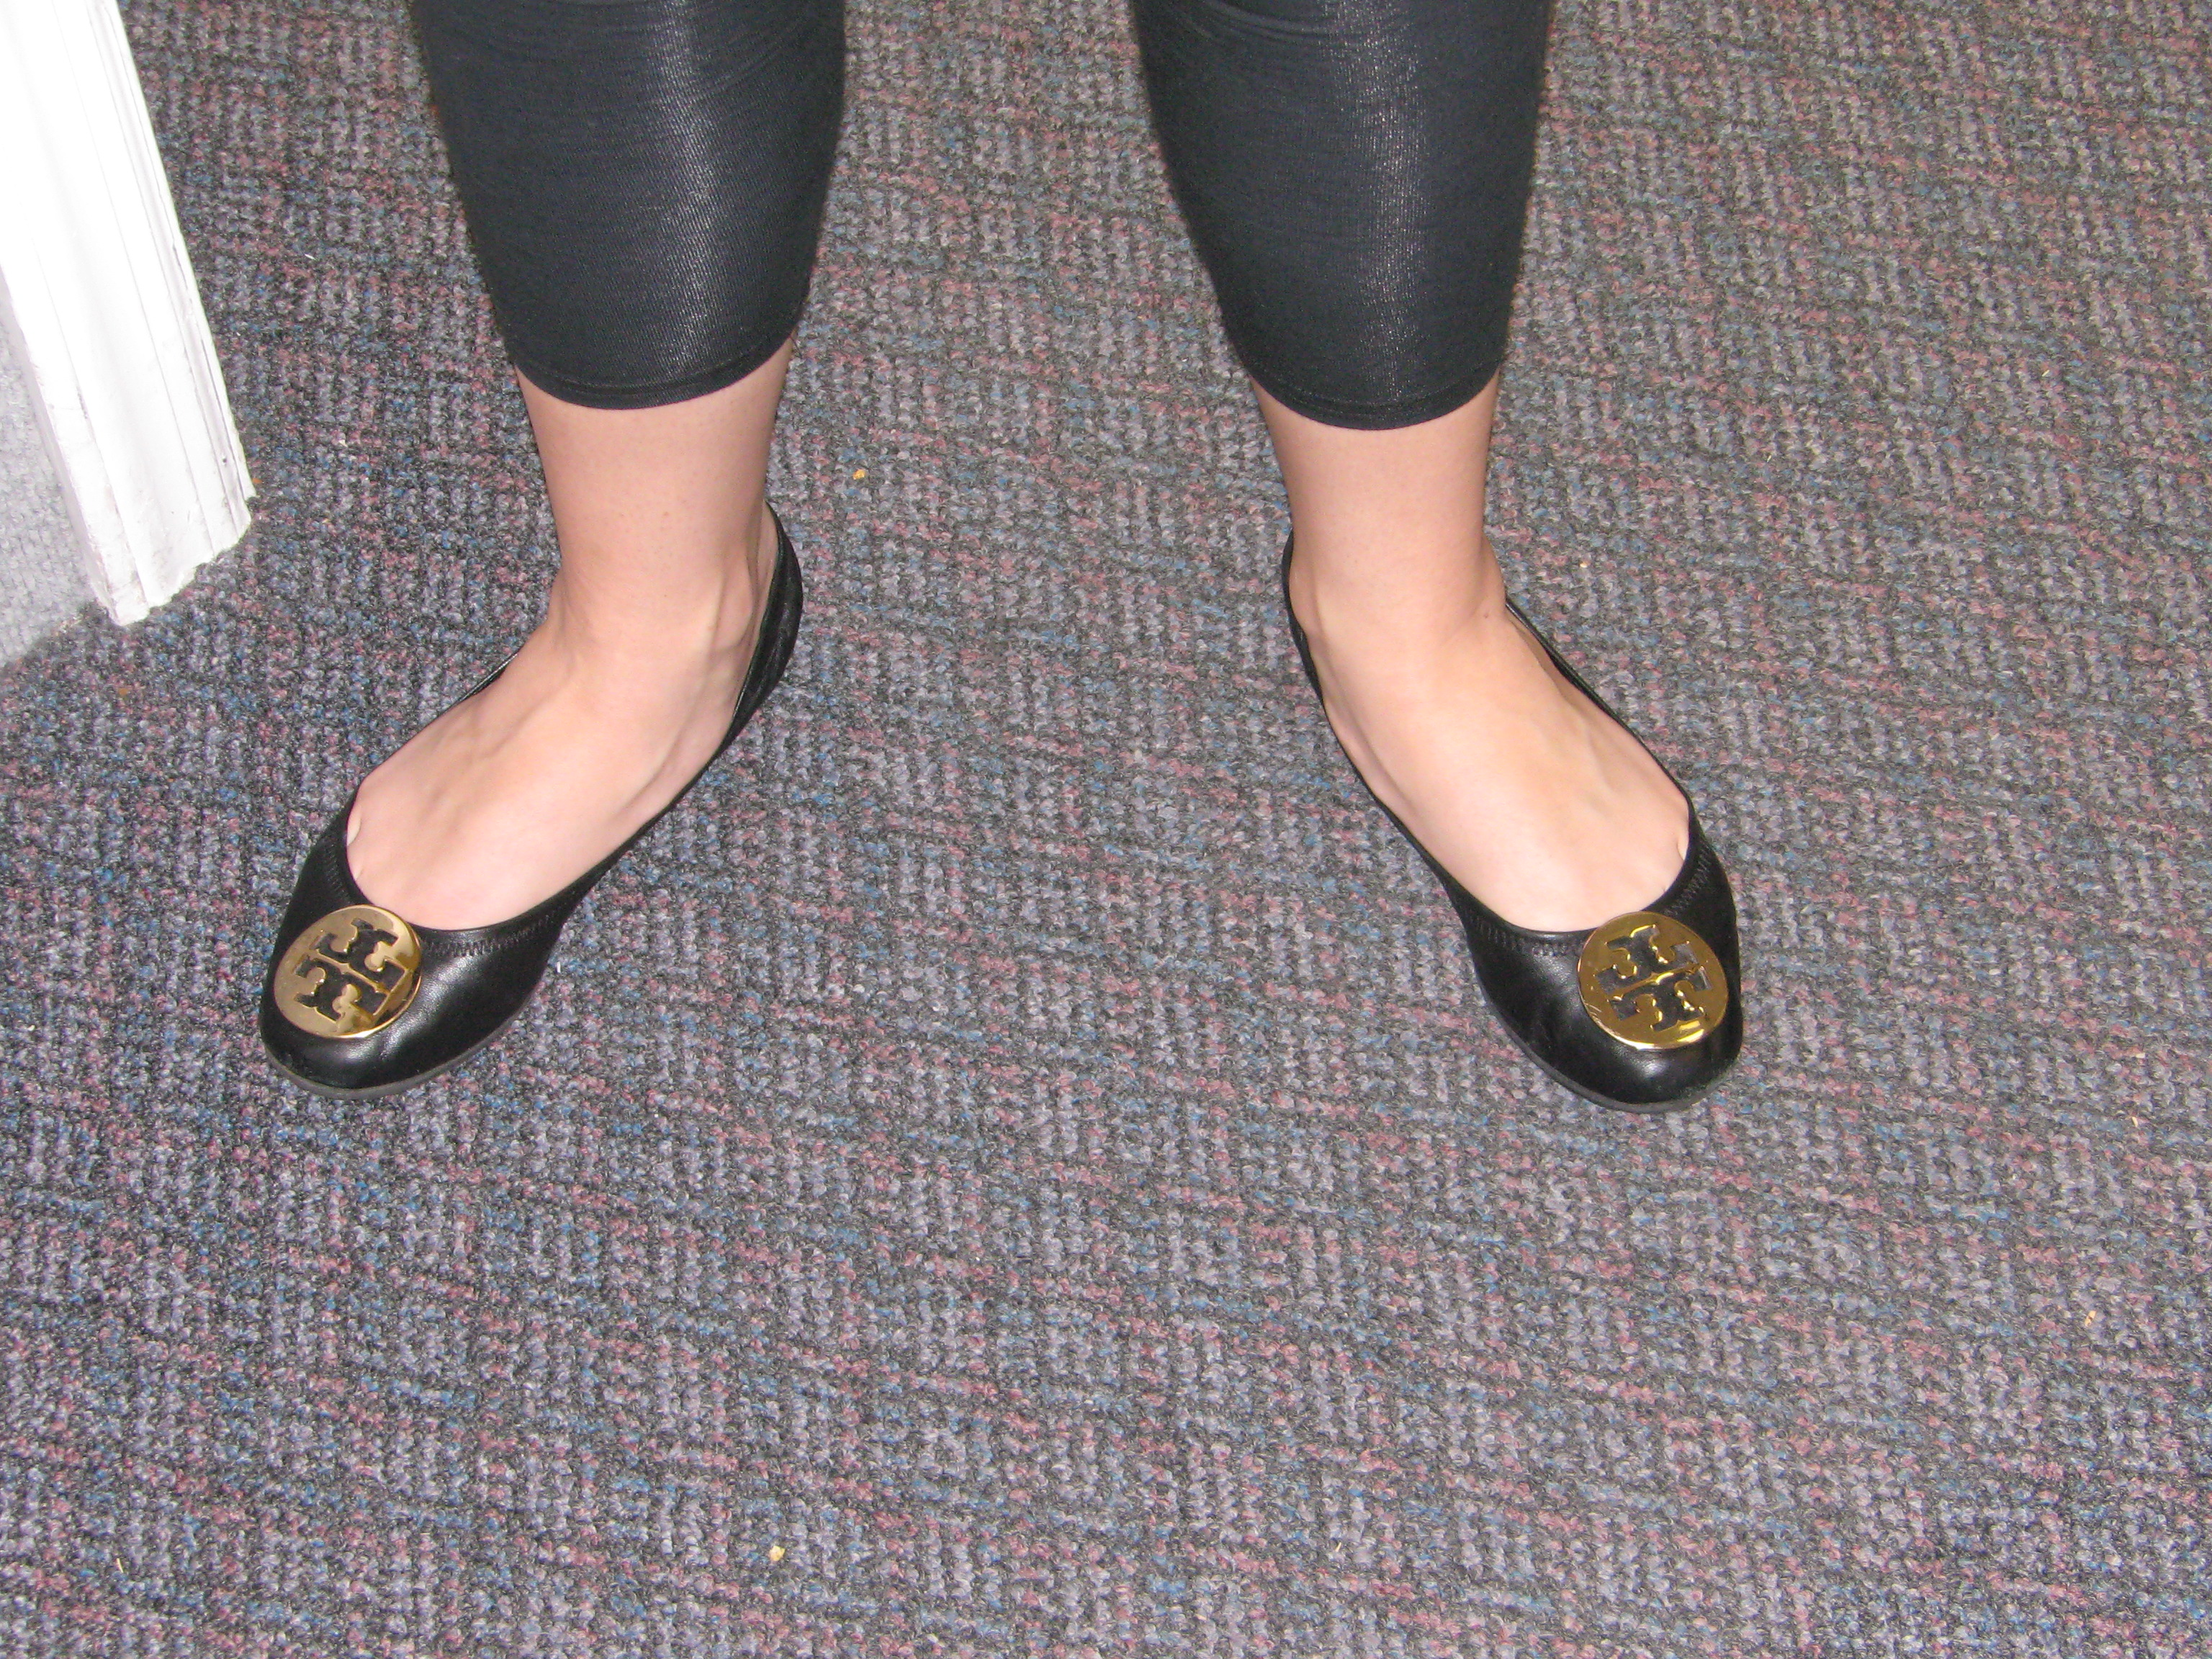 ... wiki Email a linkto this file Informationabout reusing. File:20081102 Tory  Burch medallioned shoes.JPG